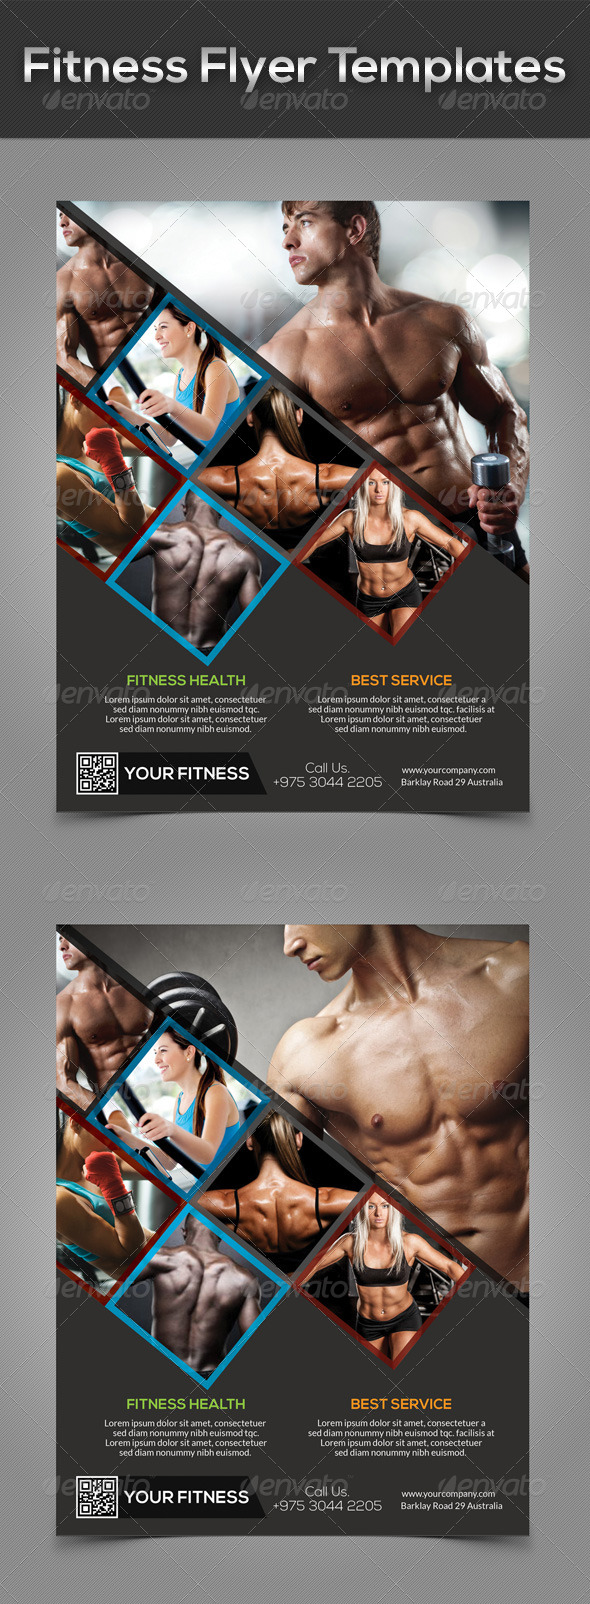 Fitness Flyer Templates